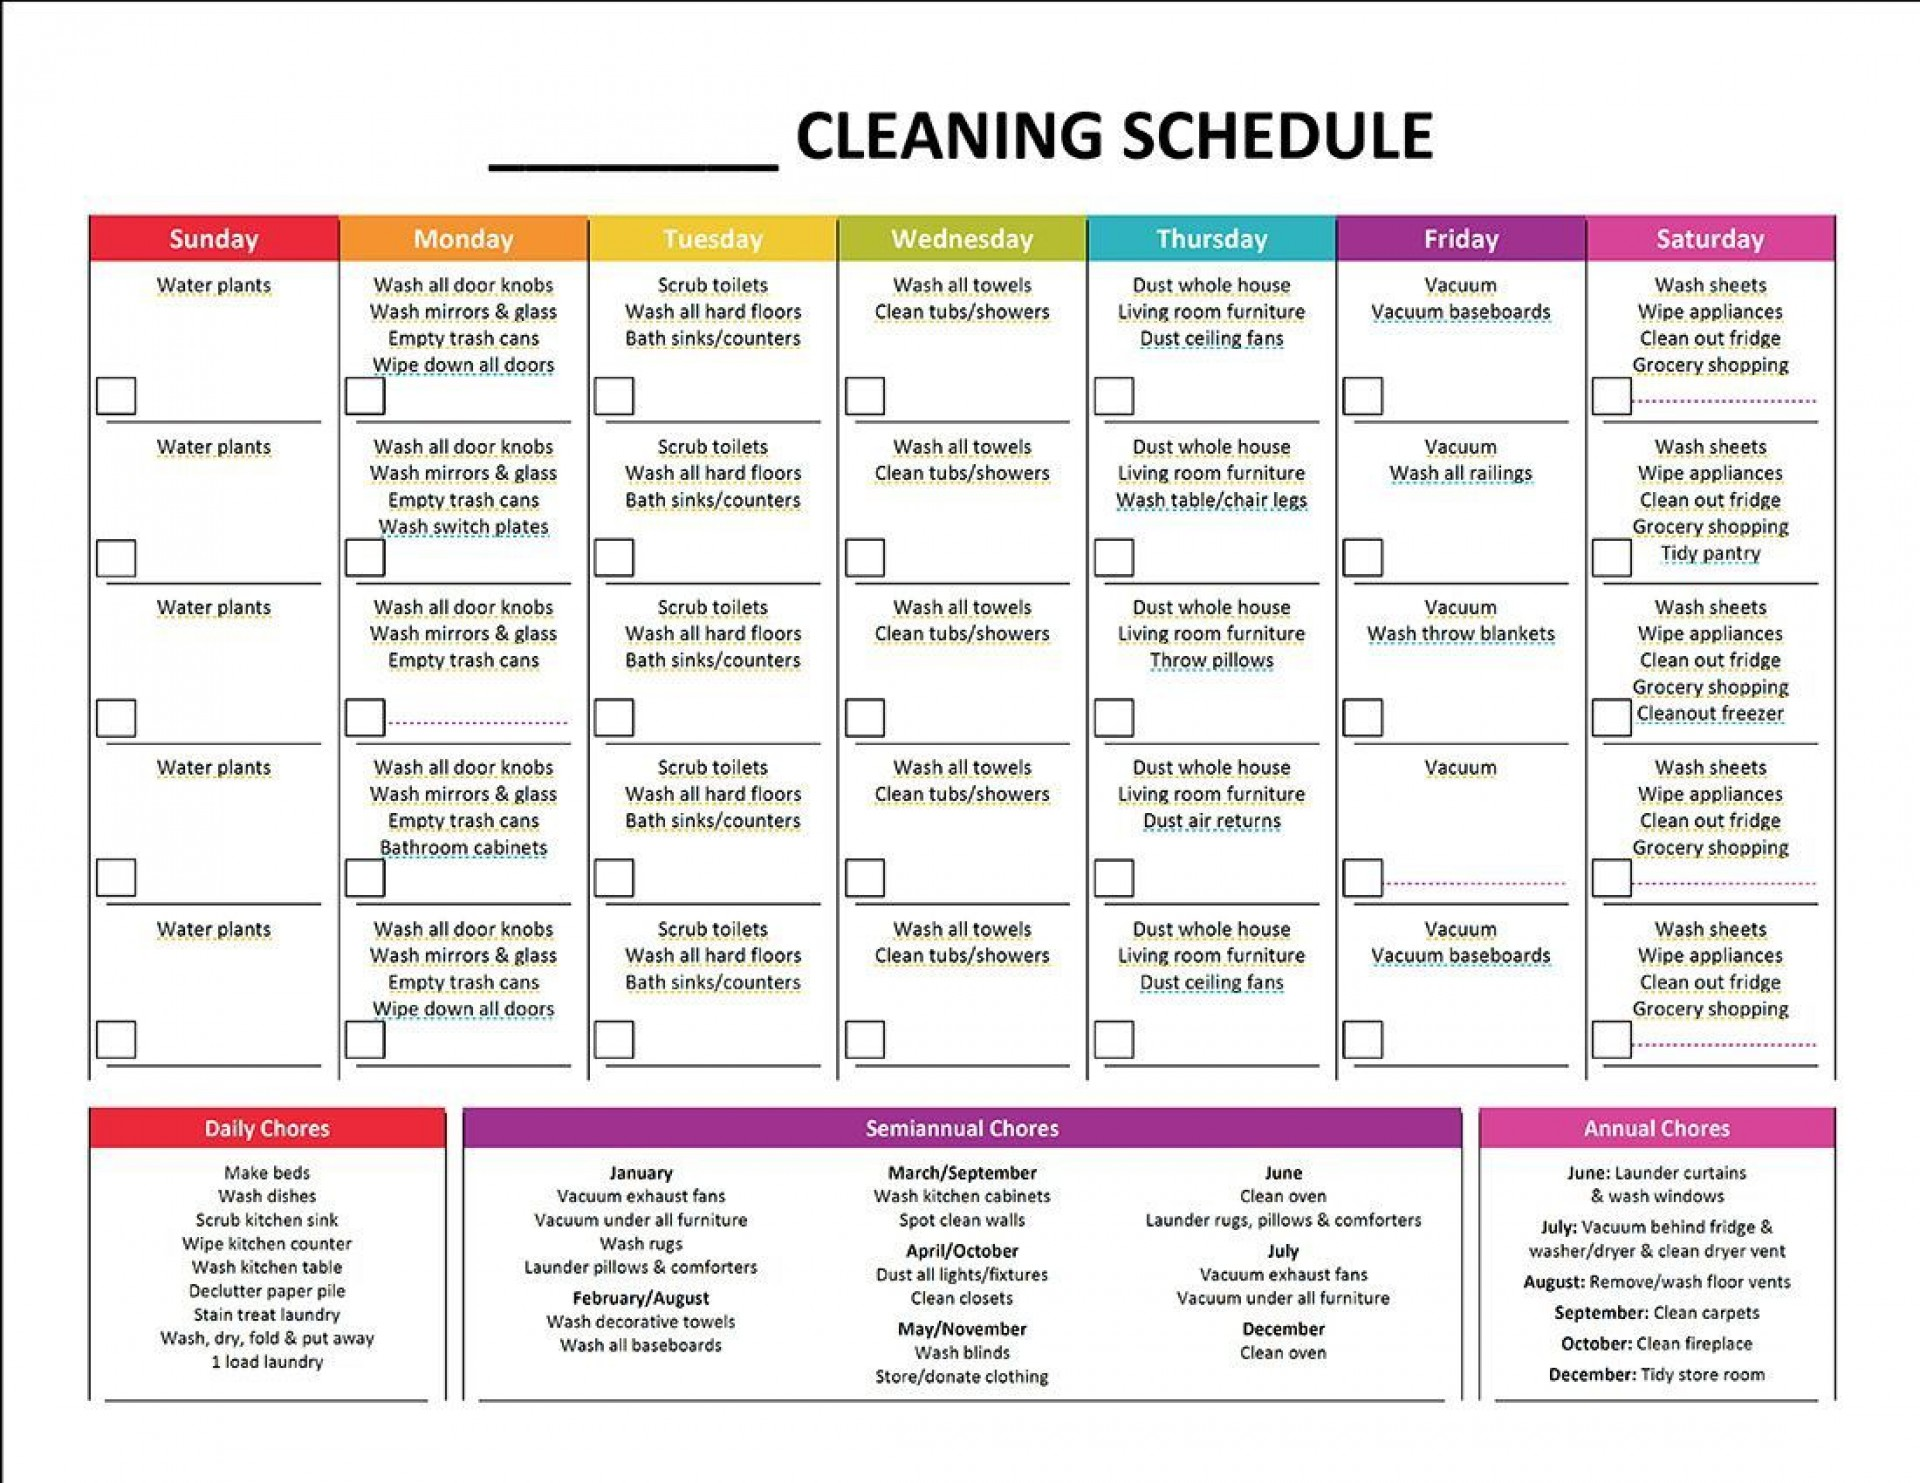 002 Impressive Weekly Cleaning Schedule Form Image  Template Restaurant Excel1920